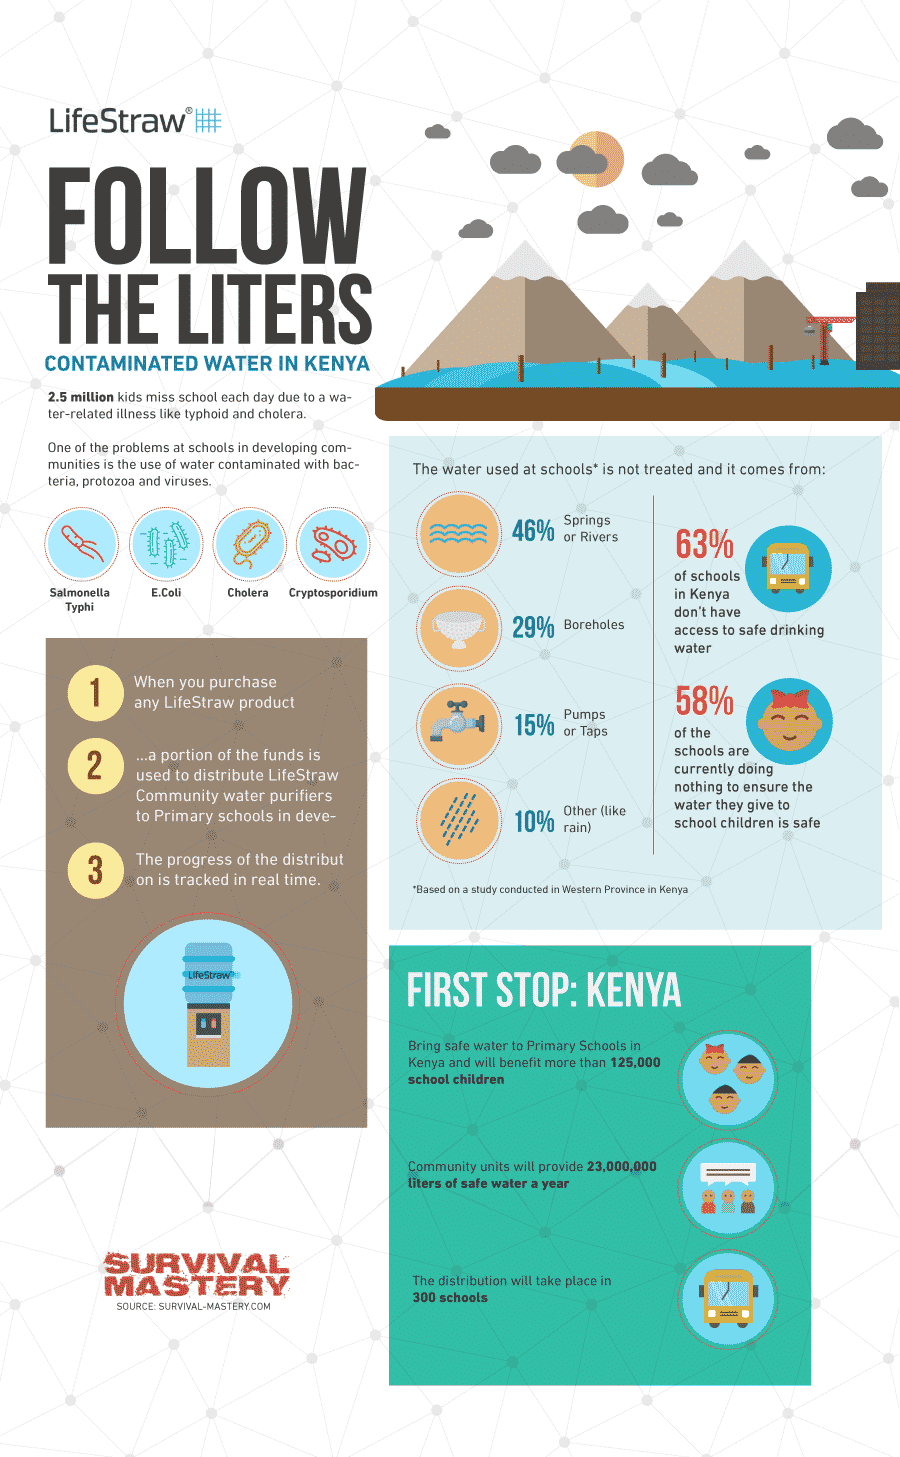 Follow the liters infographic